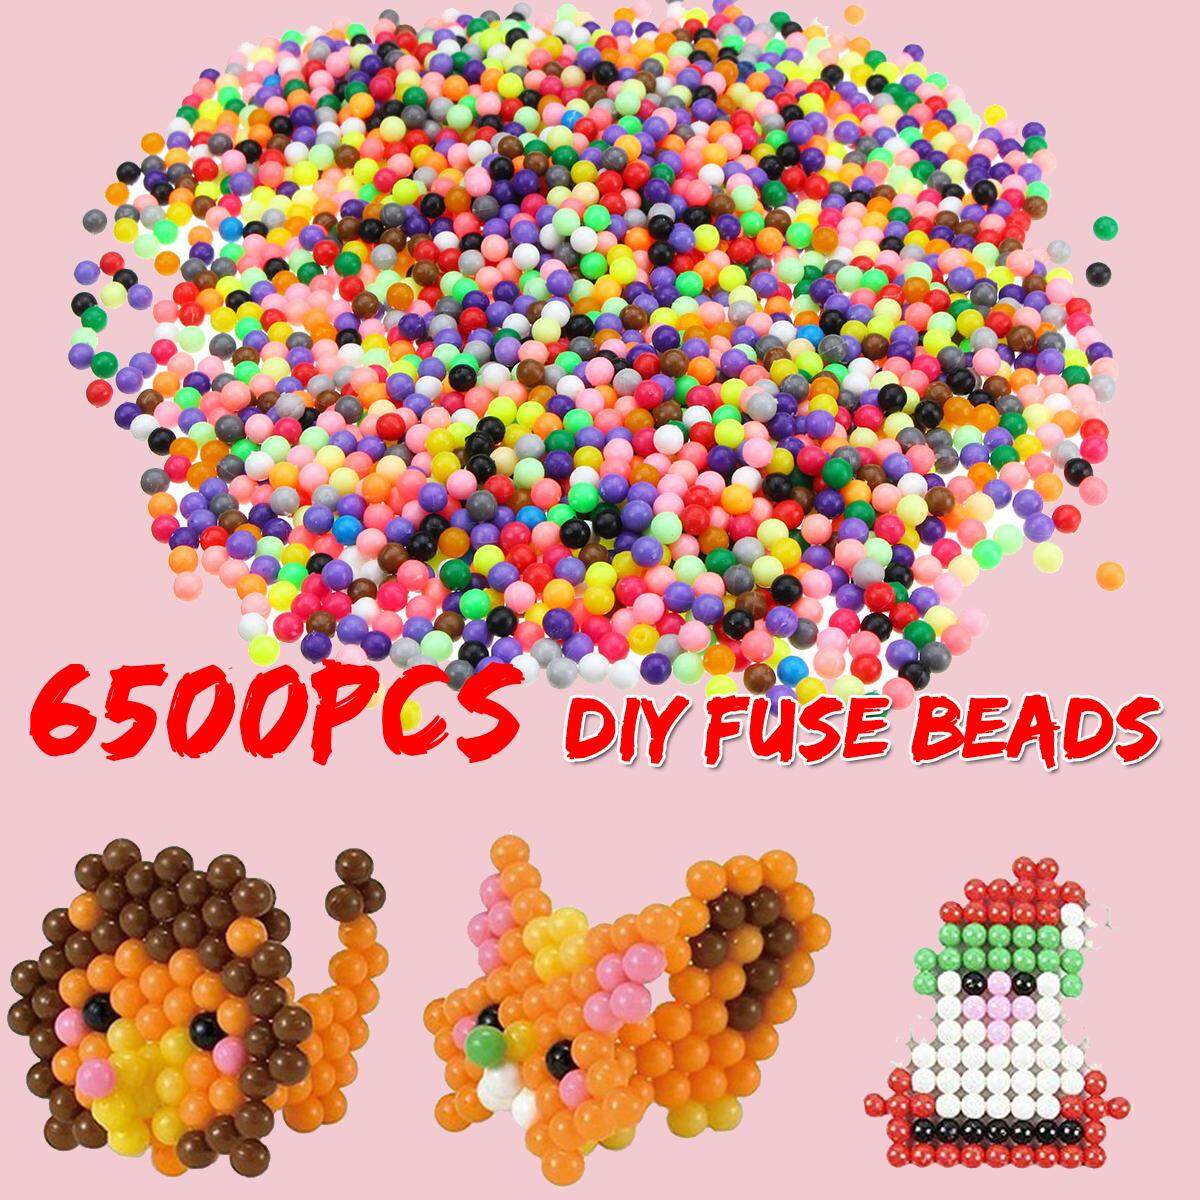 6500pcs 30 Color Aqua Refill Water Fuse Jigsaw Beads Art Diy Craft Toys Kid Gift By Freebang.